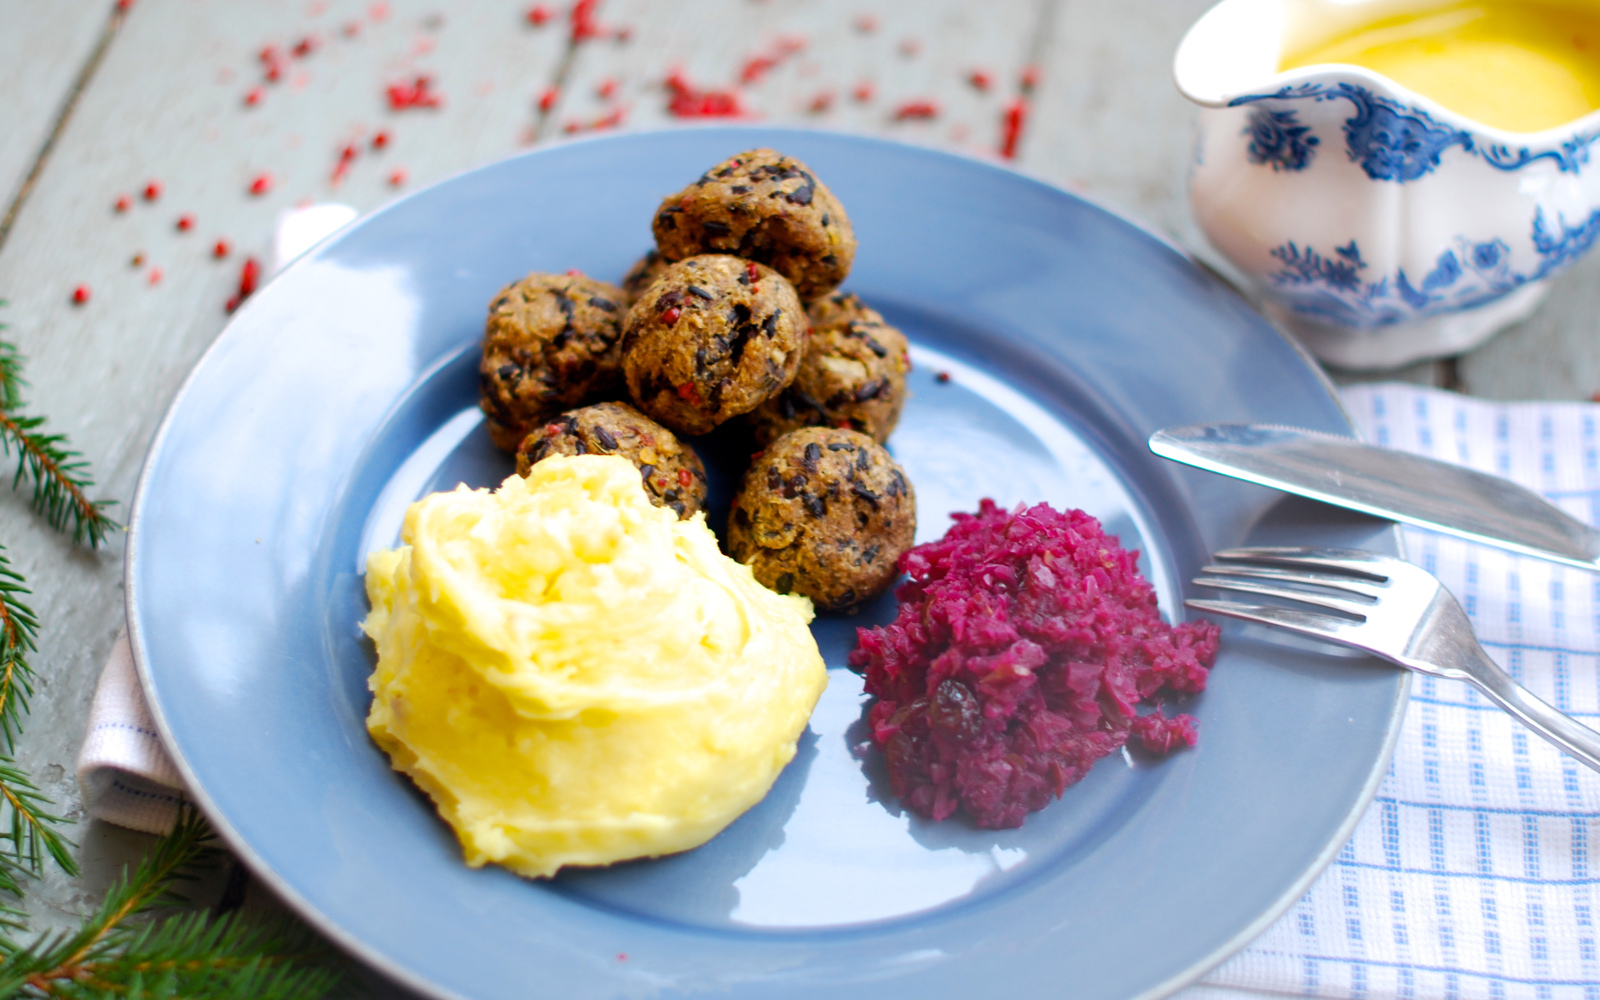 Swedish Meatballs With Lentils and Black Rice